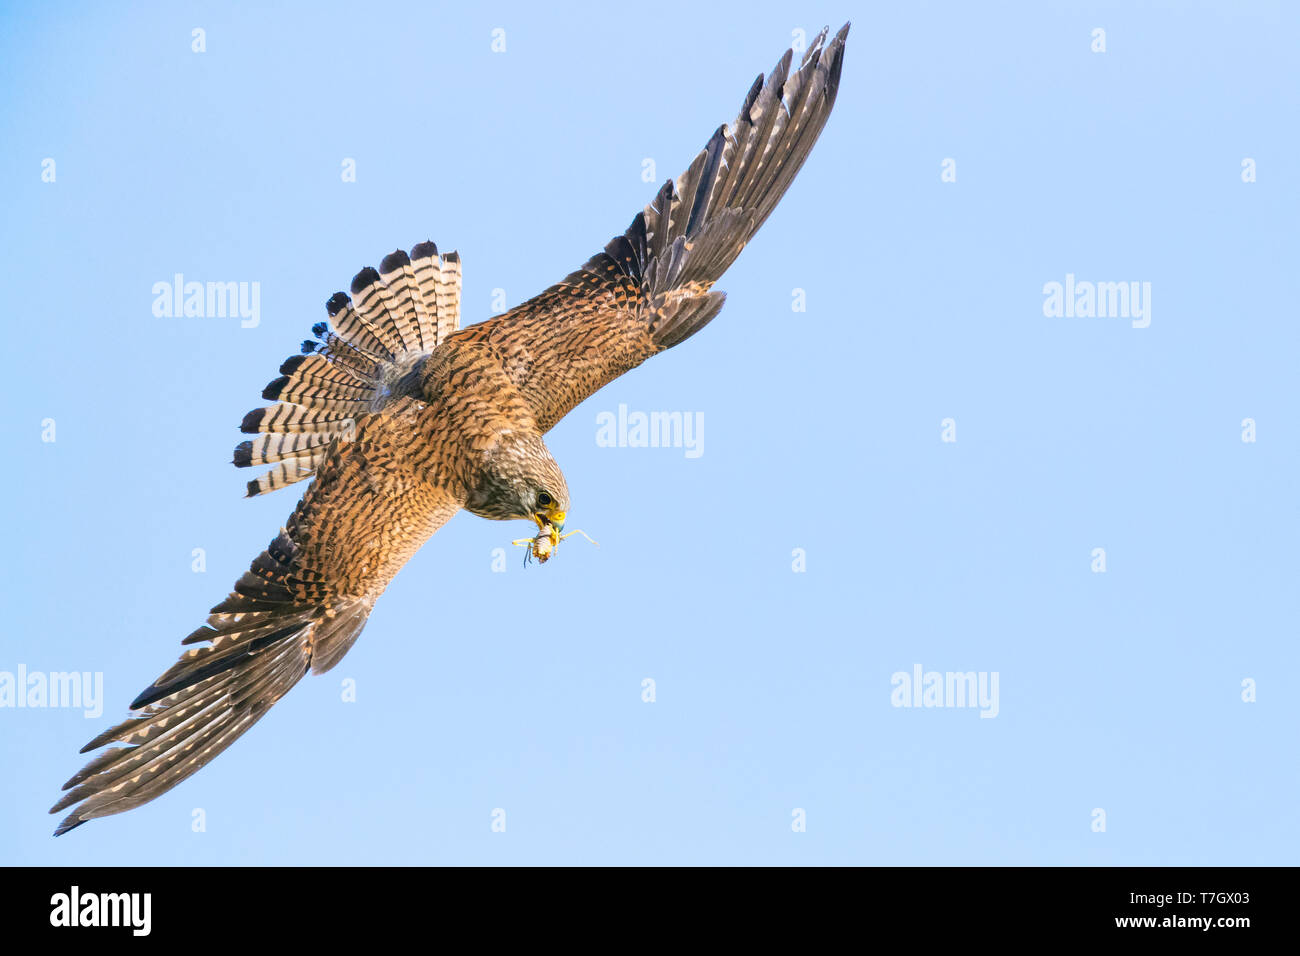 Lesser Kestrel (Falco naumanni), female in flight showing upper parts and wings. Carrying a cricket in its beal. - Stock Image